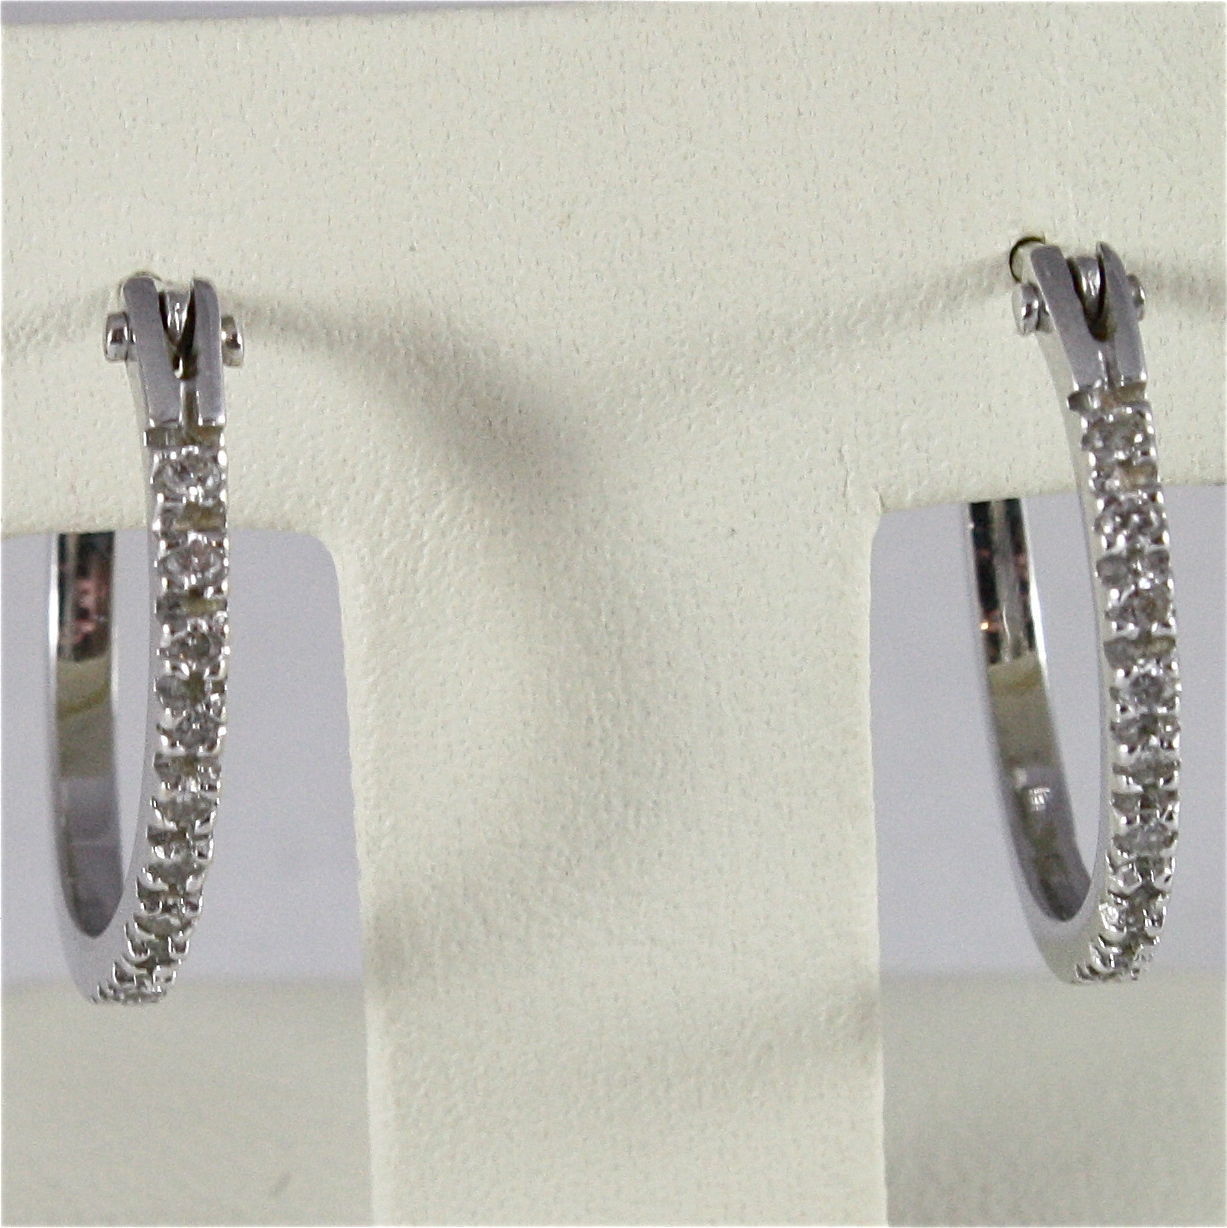 18K WHITE GOLD DIAMONDS CIRCLE PENDANT EARRINGS, CT0.19, COLOR H, MADE IN ITALY